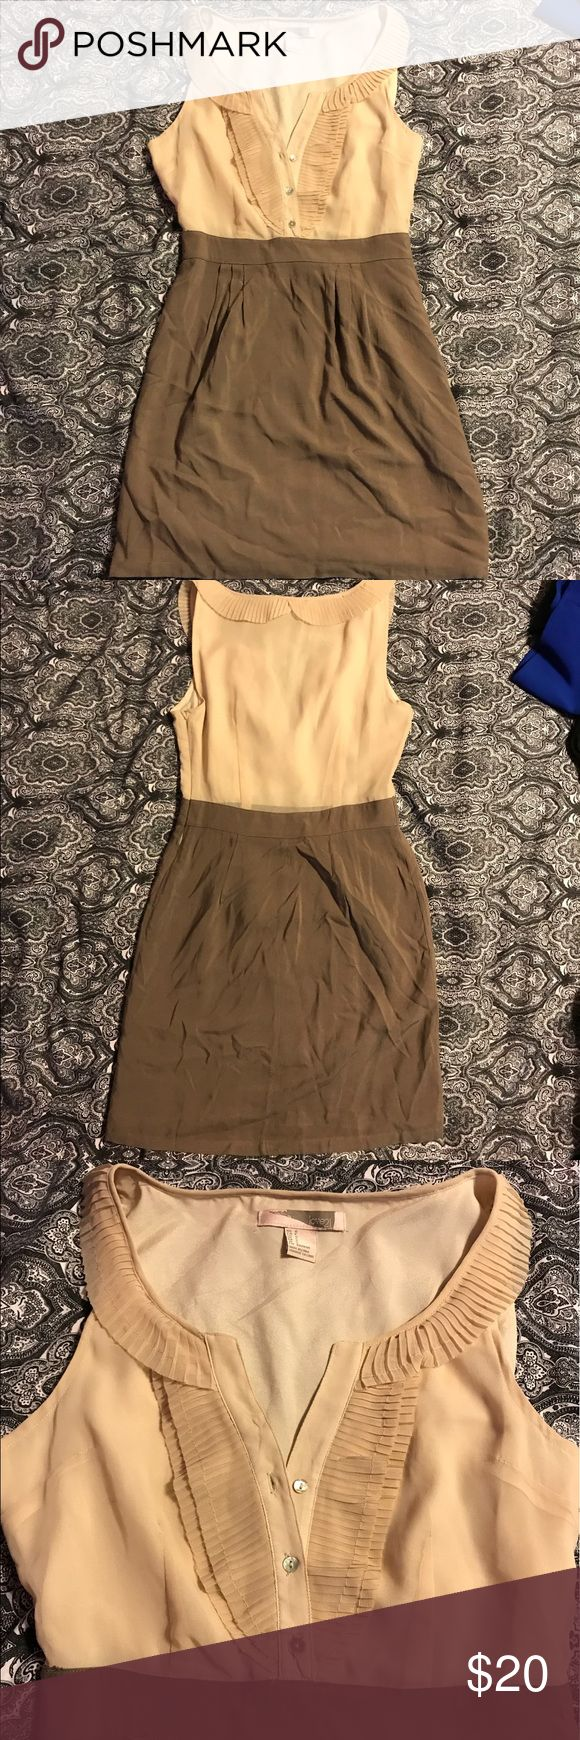 NWOT Cream and tan skirt and shirt style dress Lovely cream/pink chiffon style top with attached soft brown skirt, with zip on side. never worn Forever 21 Dresses